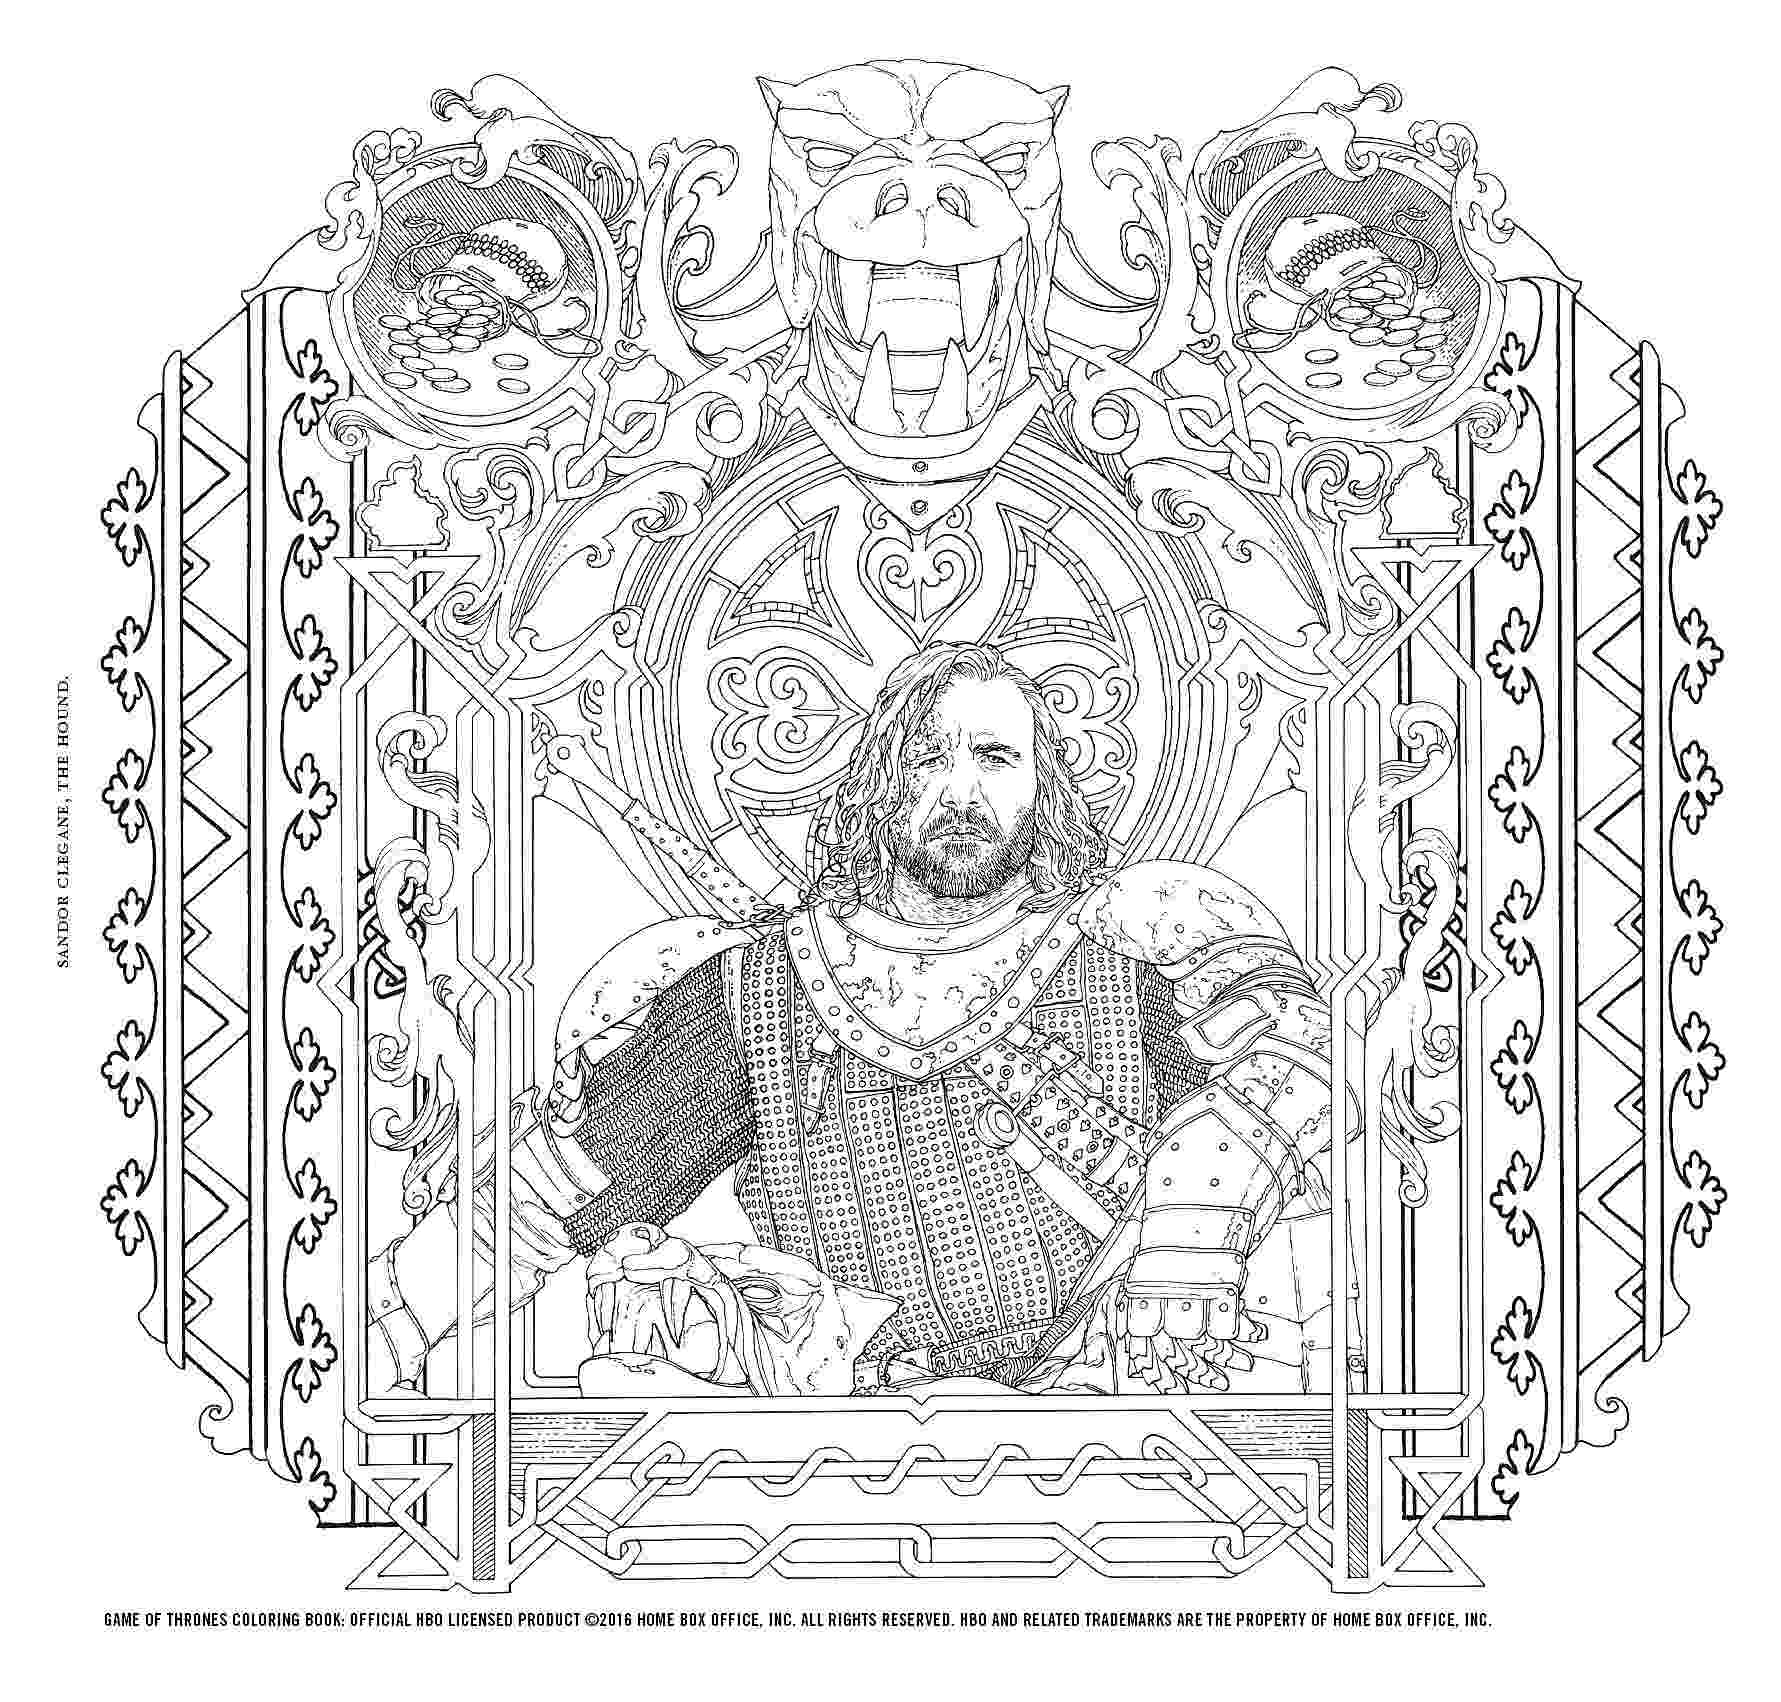 game of thrones coloring pages game of thrones coloring book game of thrones photo pages coloring thrones of game